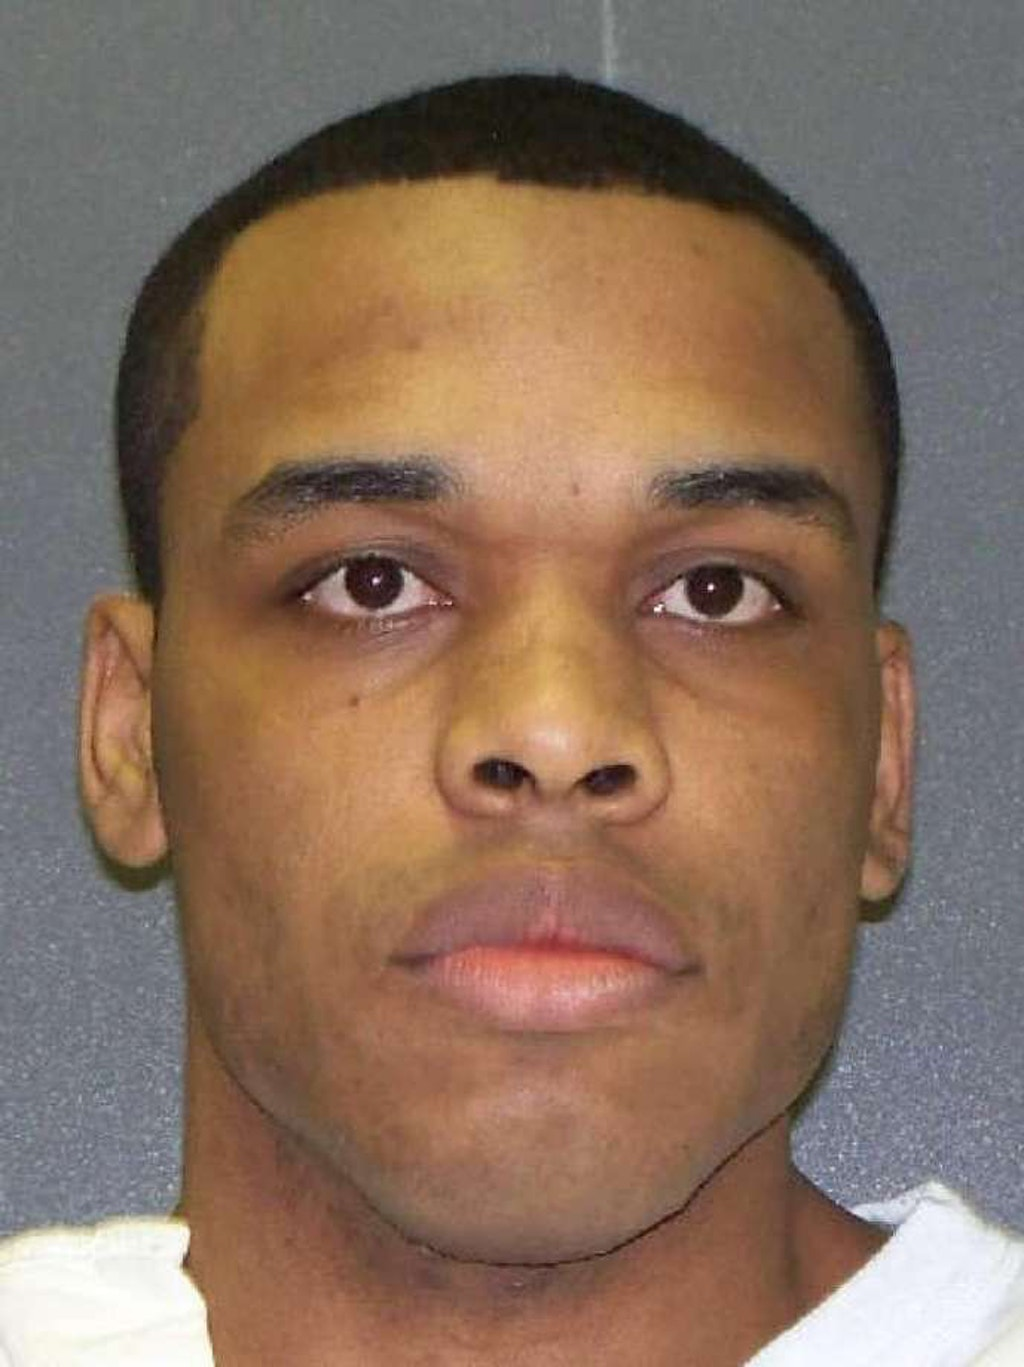 Texas Executes Another Defendant of Color Over Objection of Victim's Family